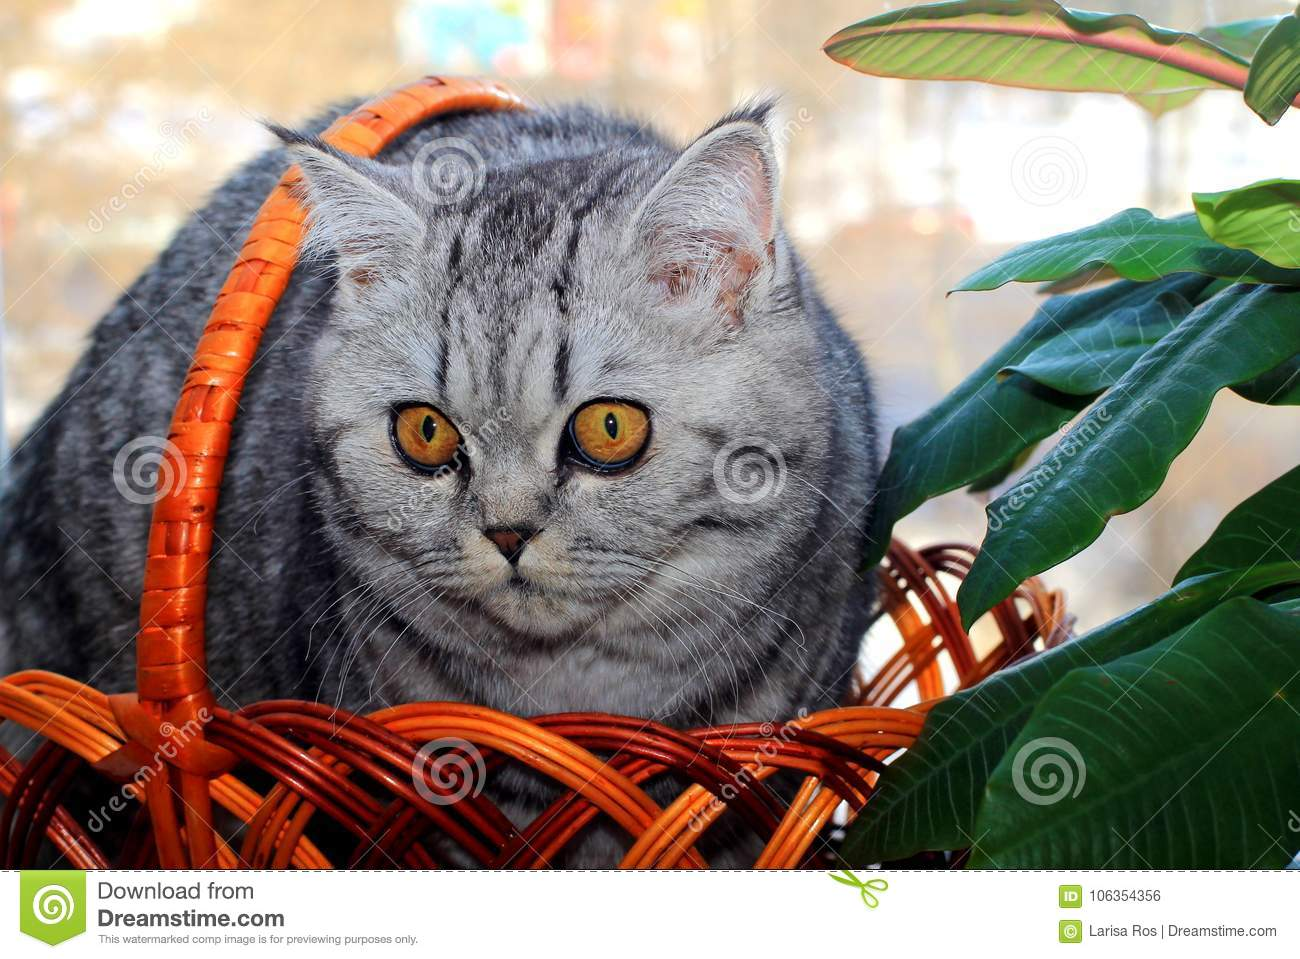 A beautiful gray kitten with yellow eyes sits in a basket near the flower.